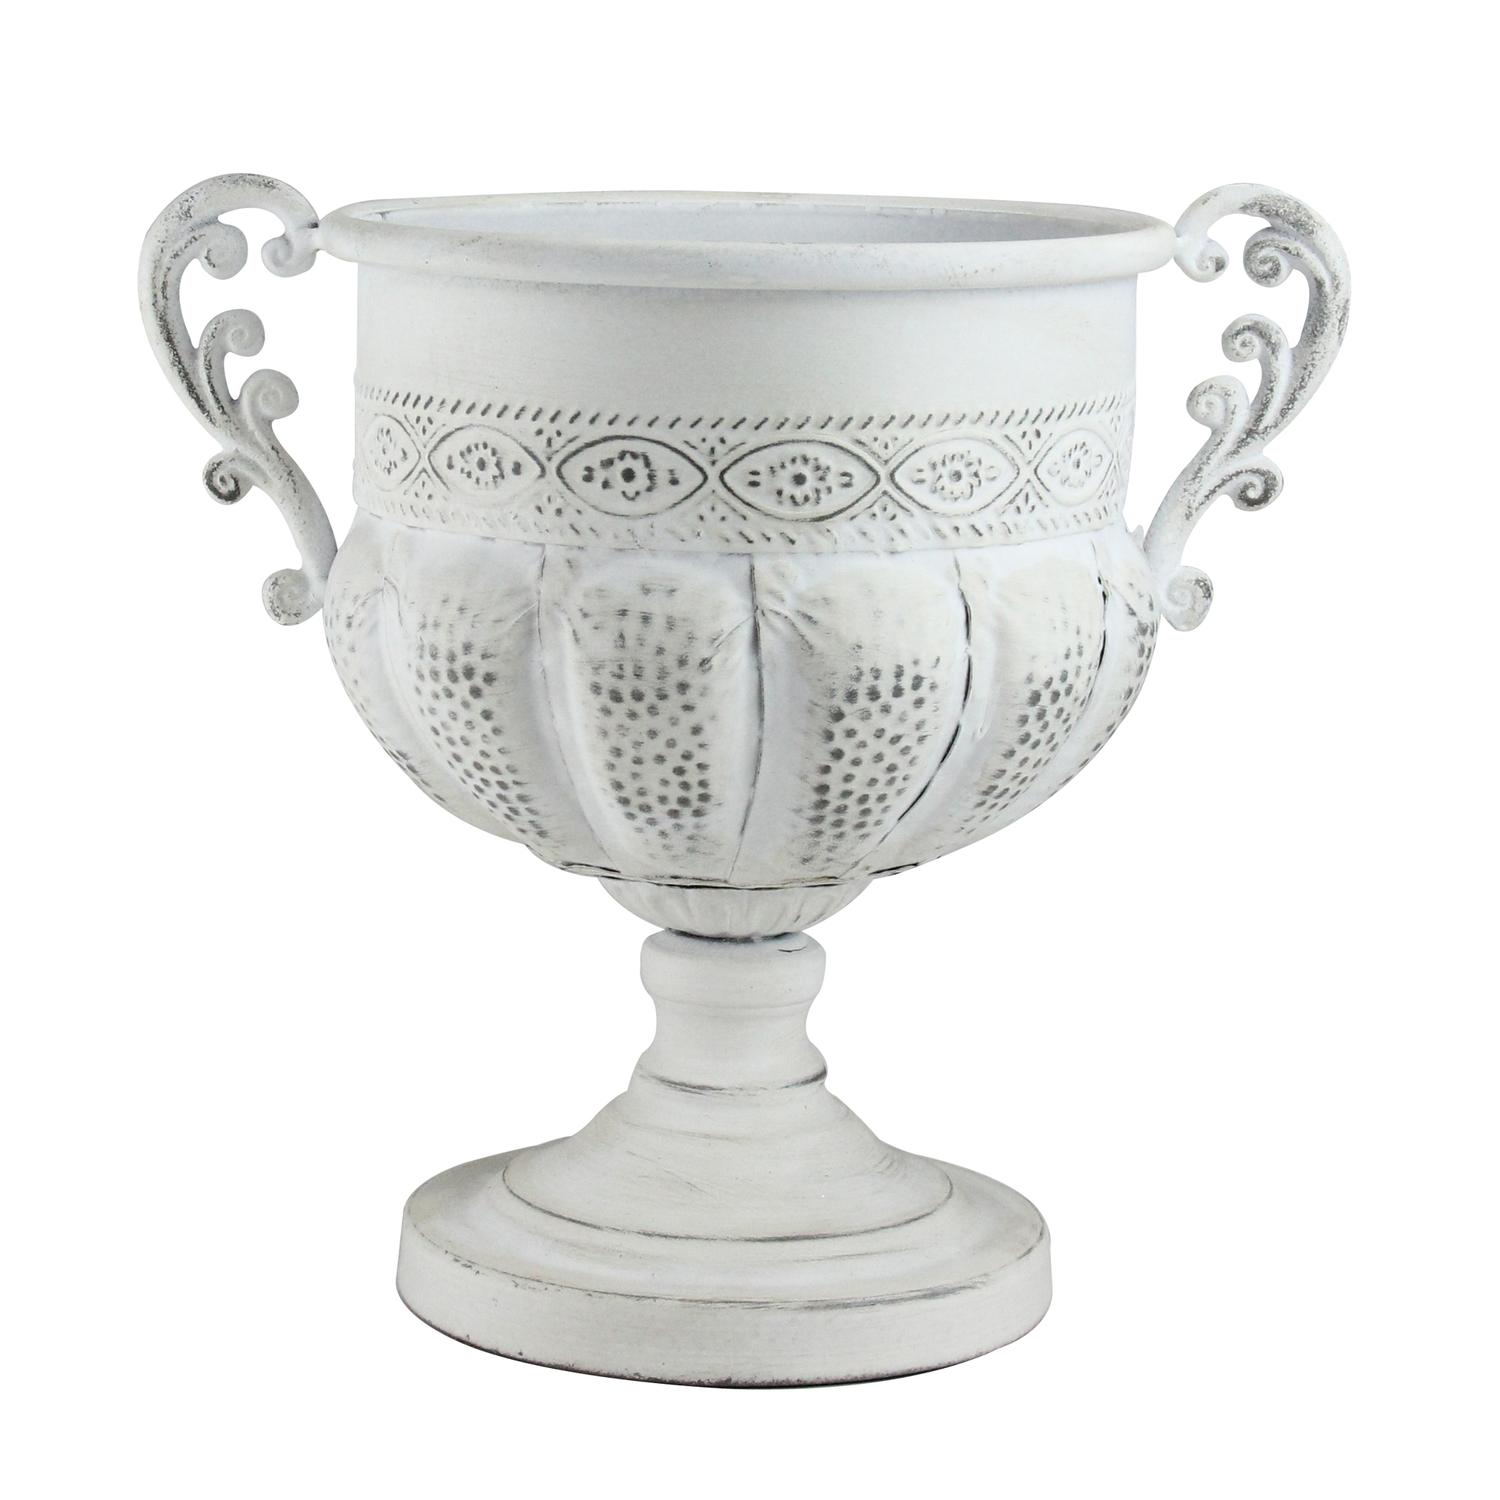 10.75� Roman Inspired Distressed Creamy White Decorative Urn Planter by Allstate